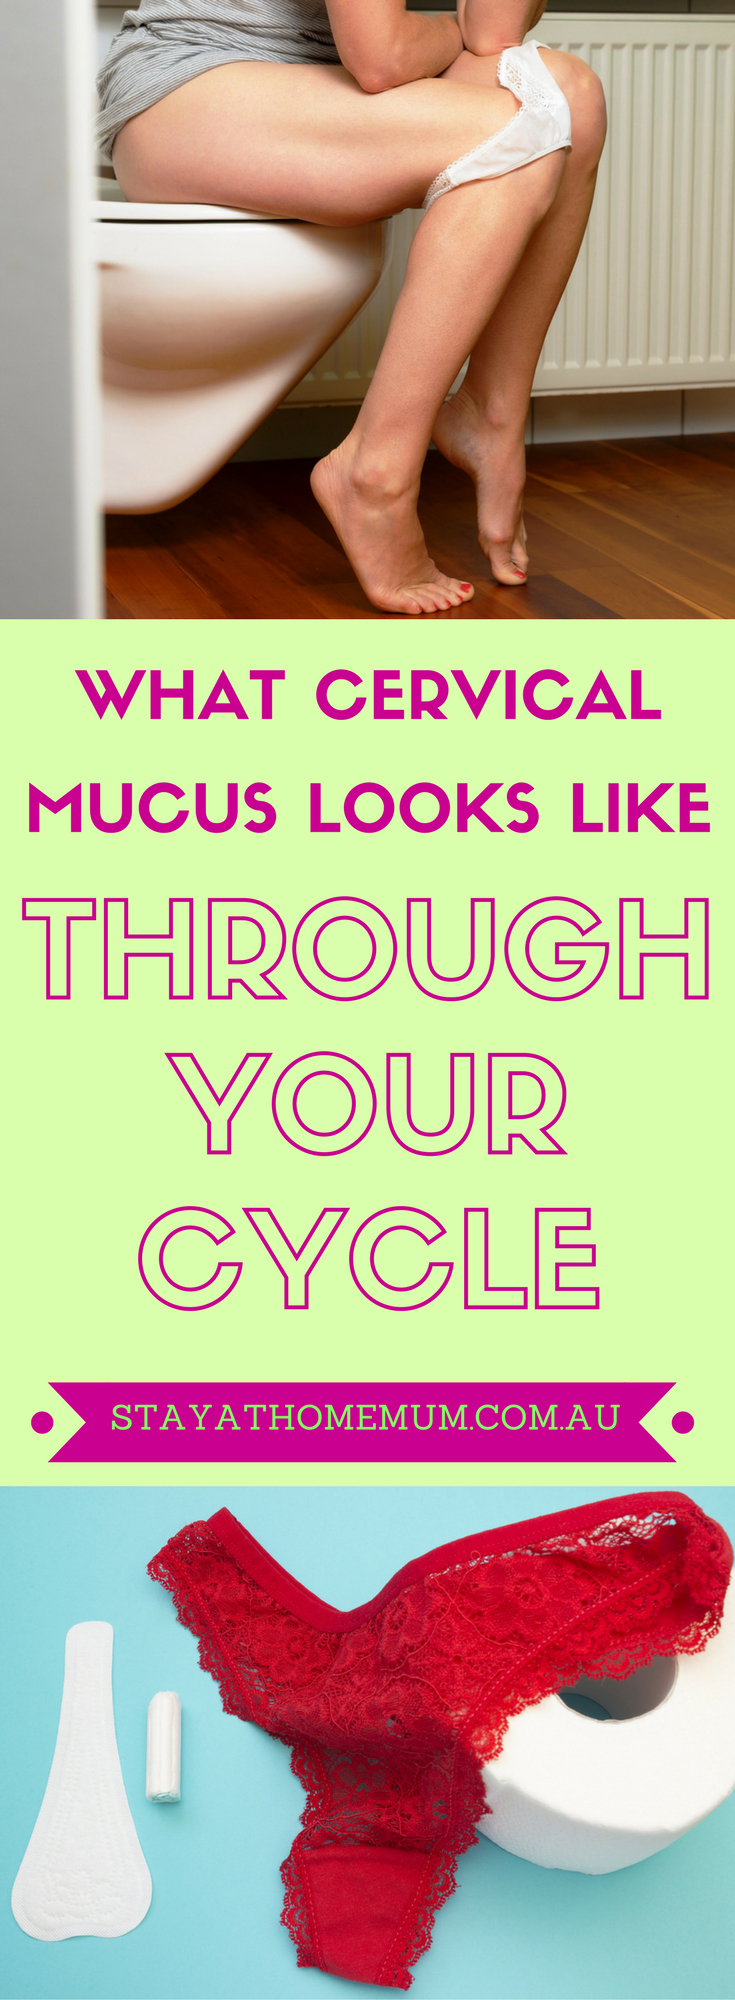 What cervical mucus looks like through your cycle Photo 5248511